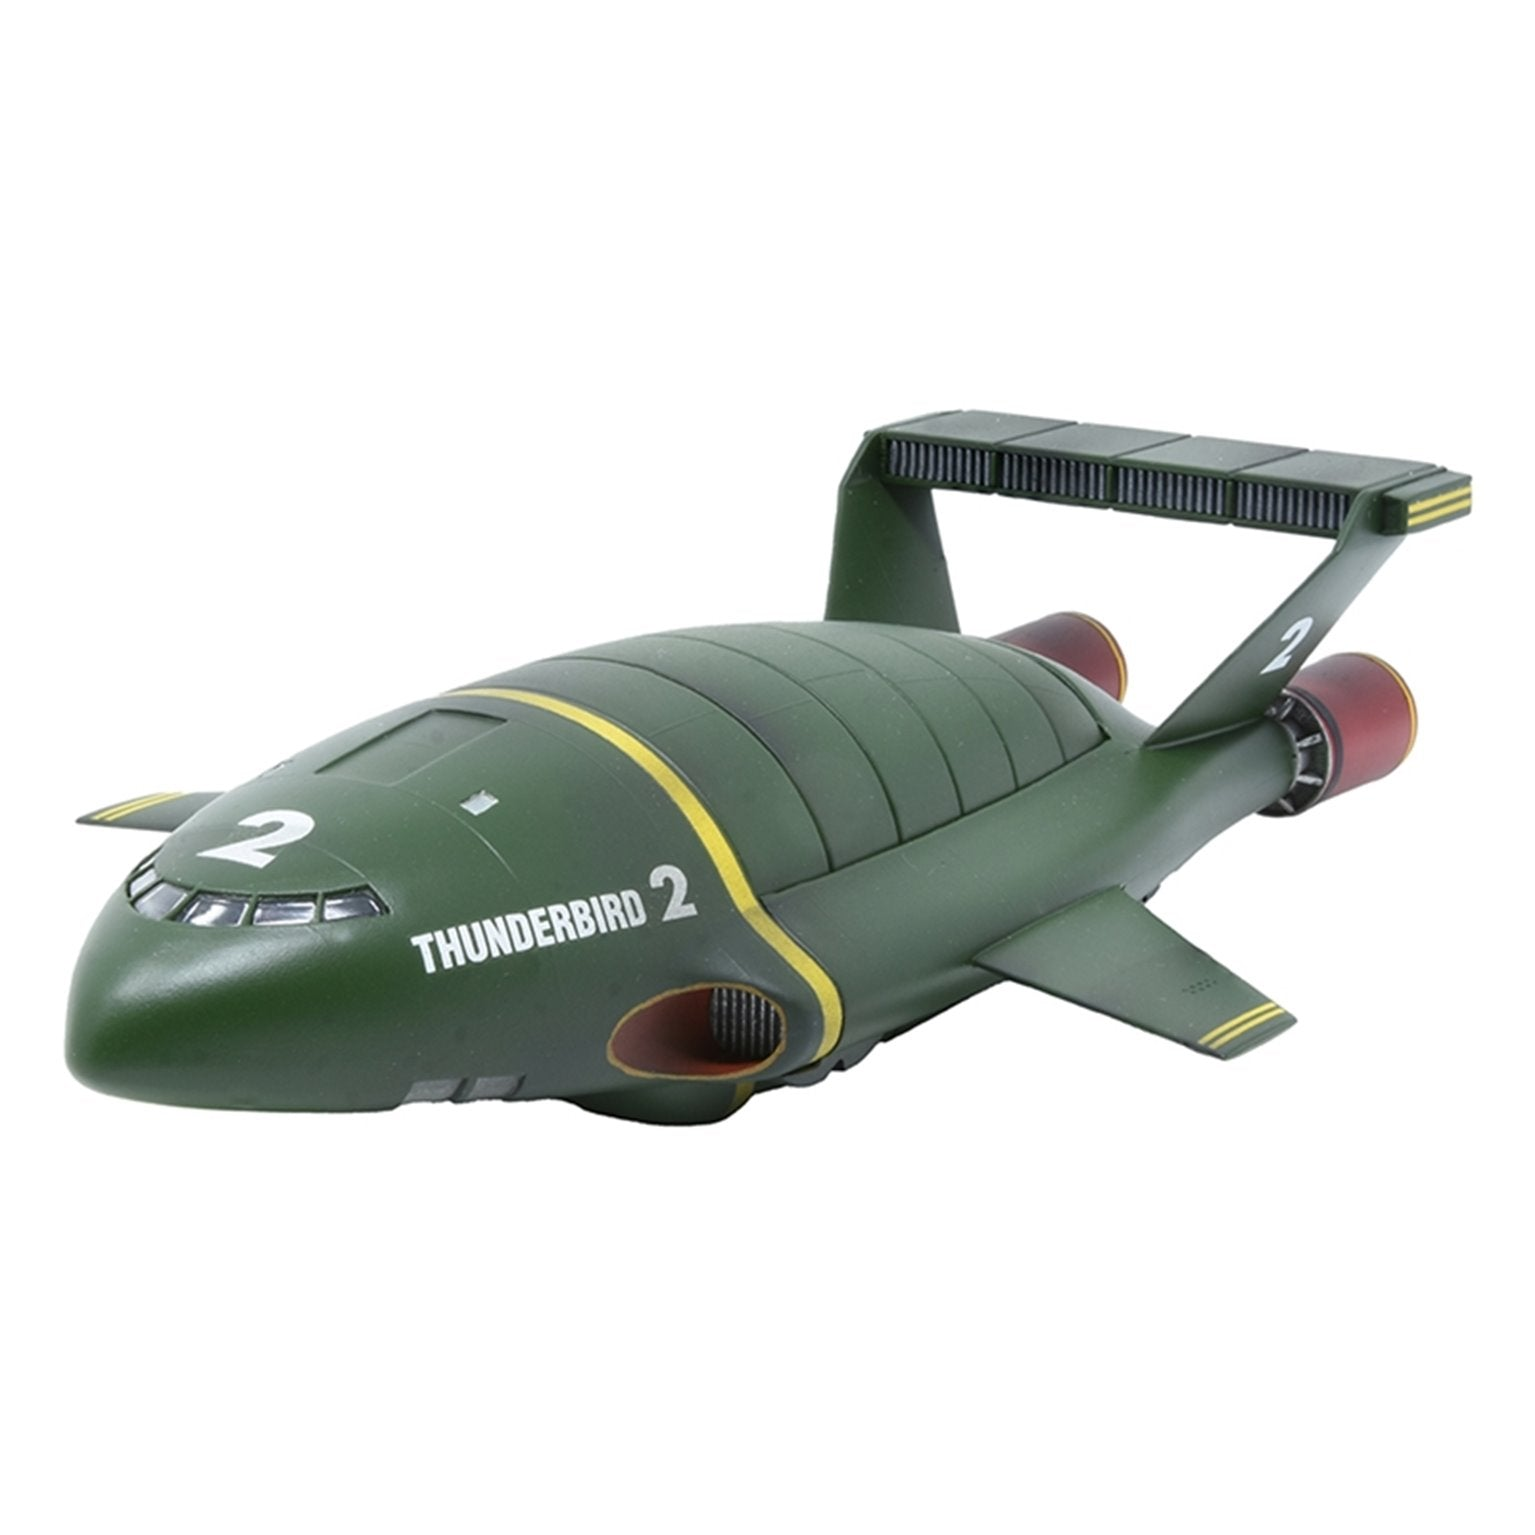 1:350 Thunderbird 2 with Thunderbird 4 Model Kit